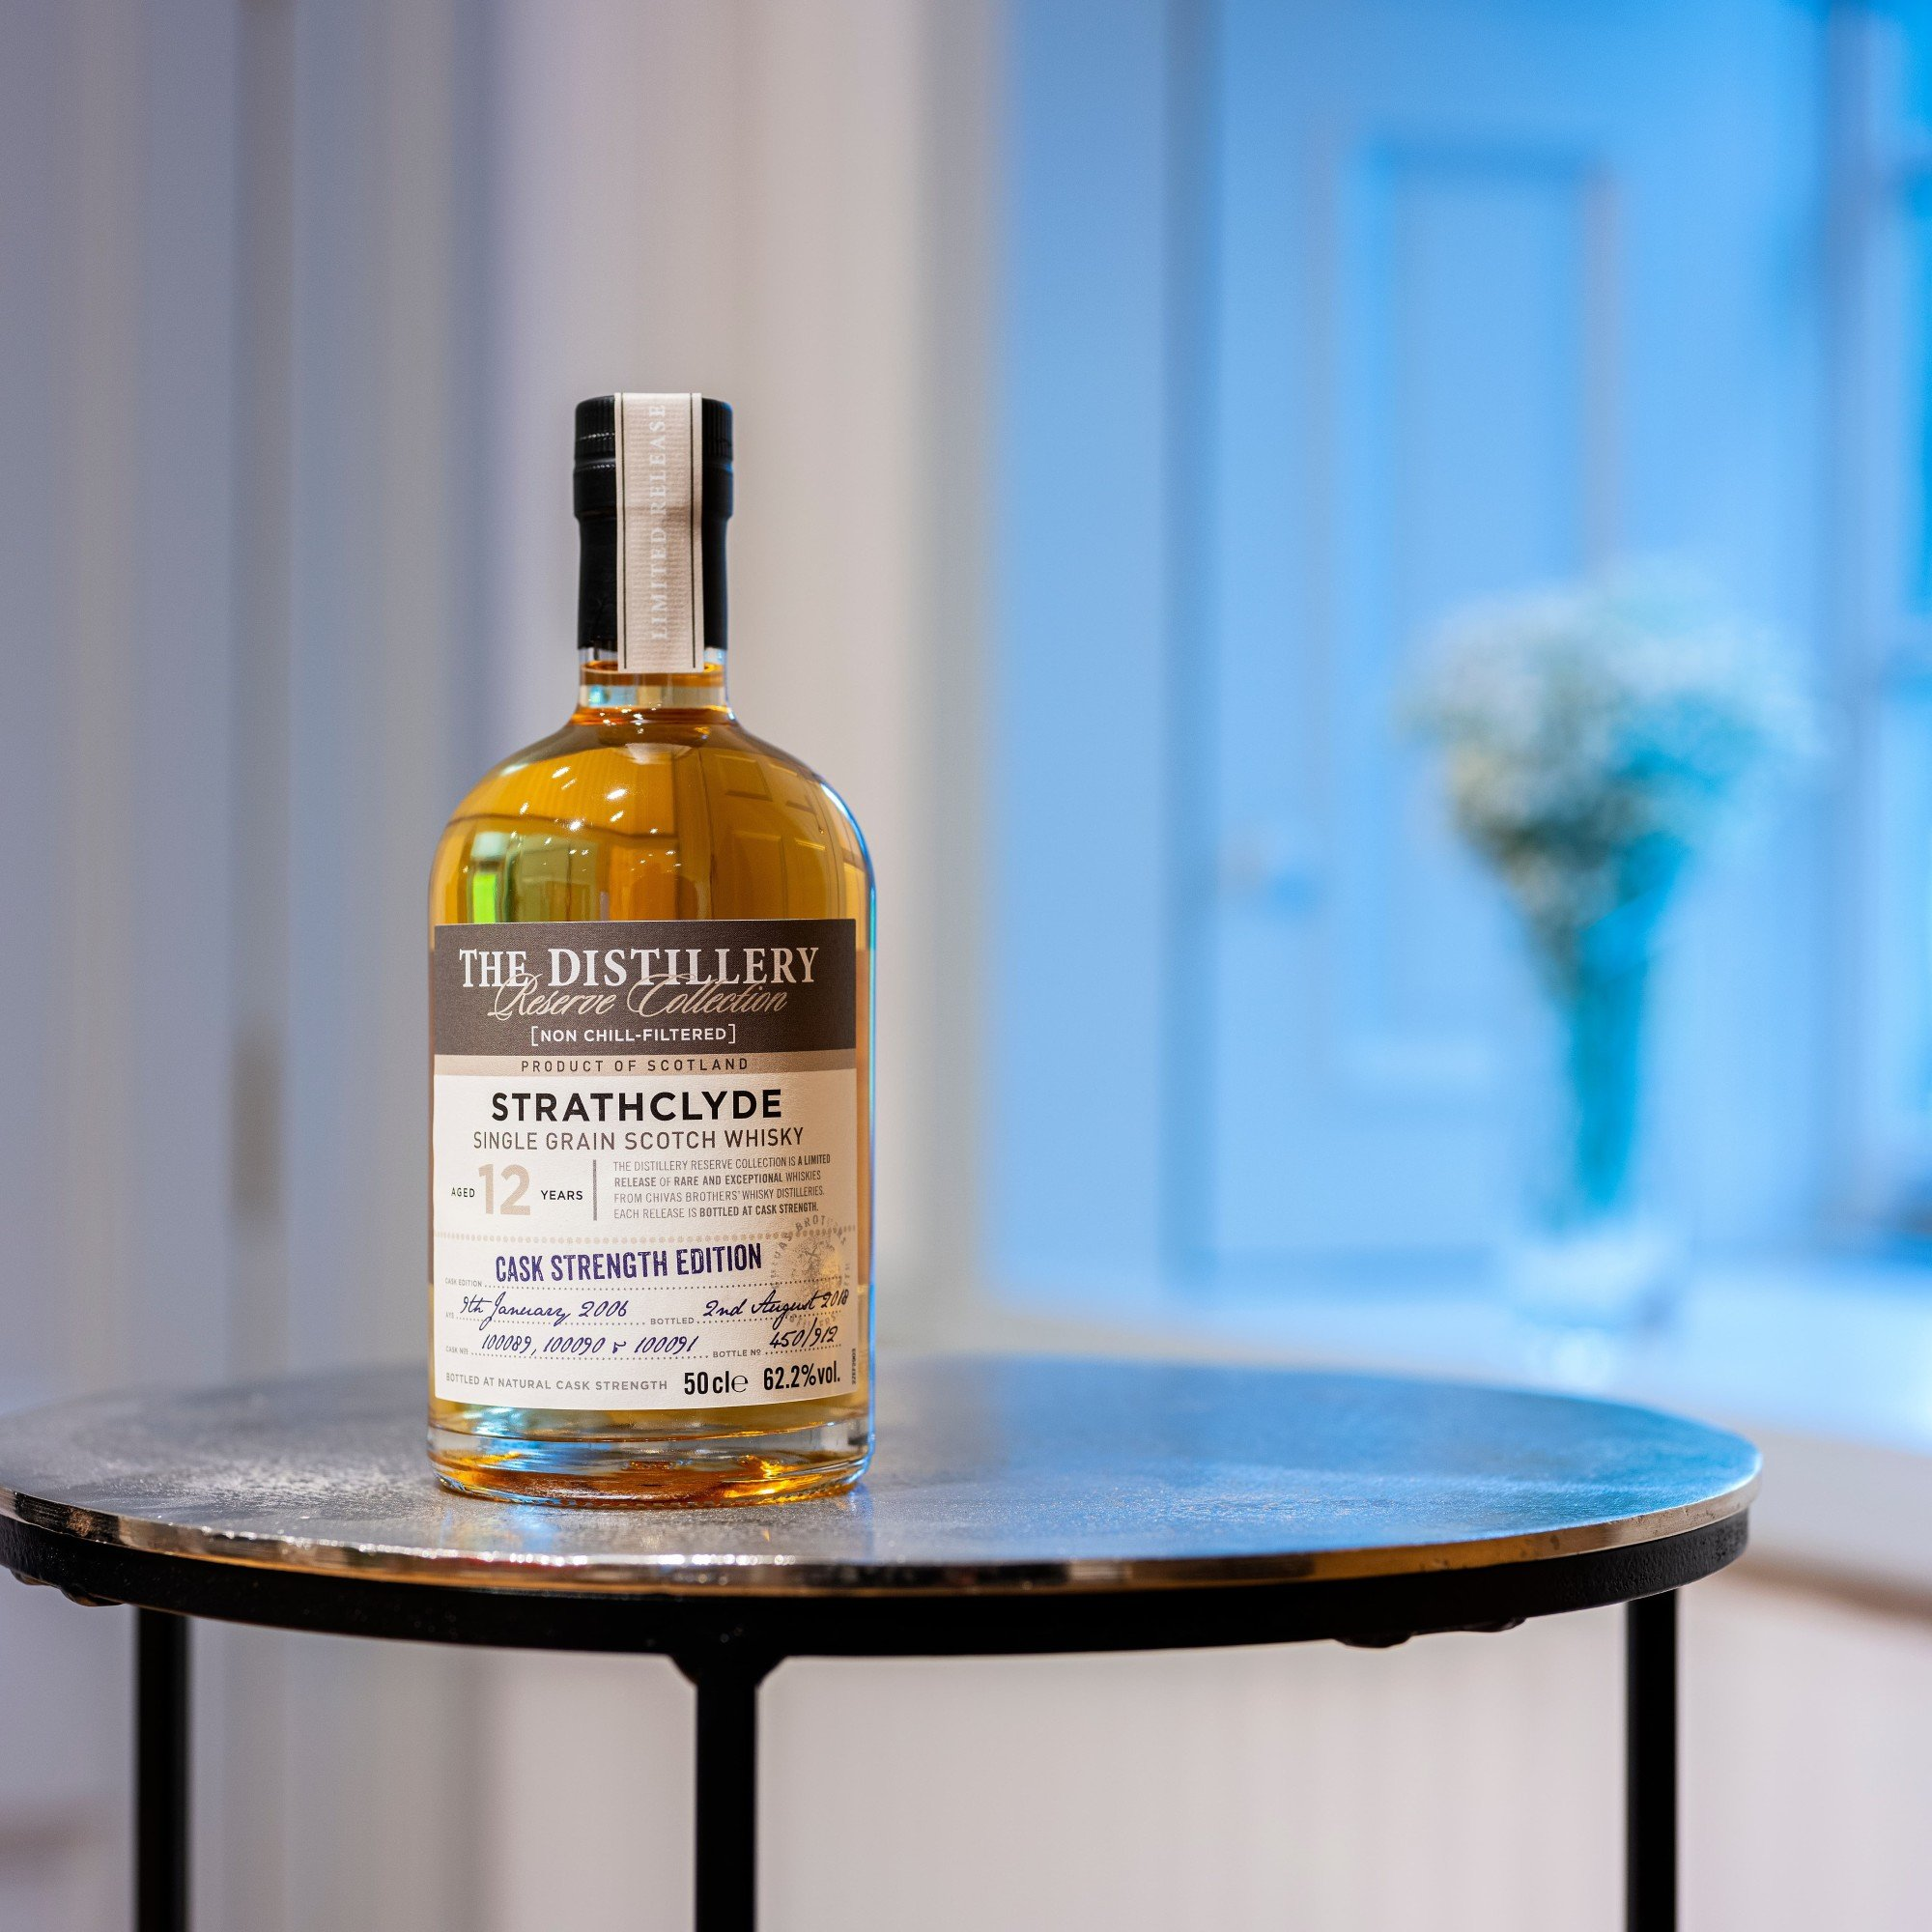 Strathclyde 12 Year Old Single Graing Whisky